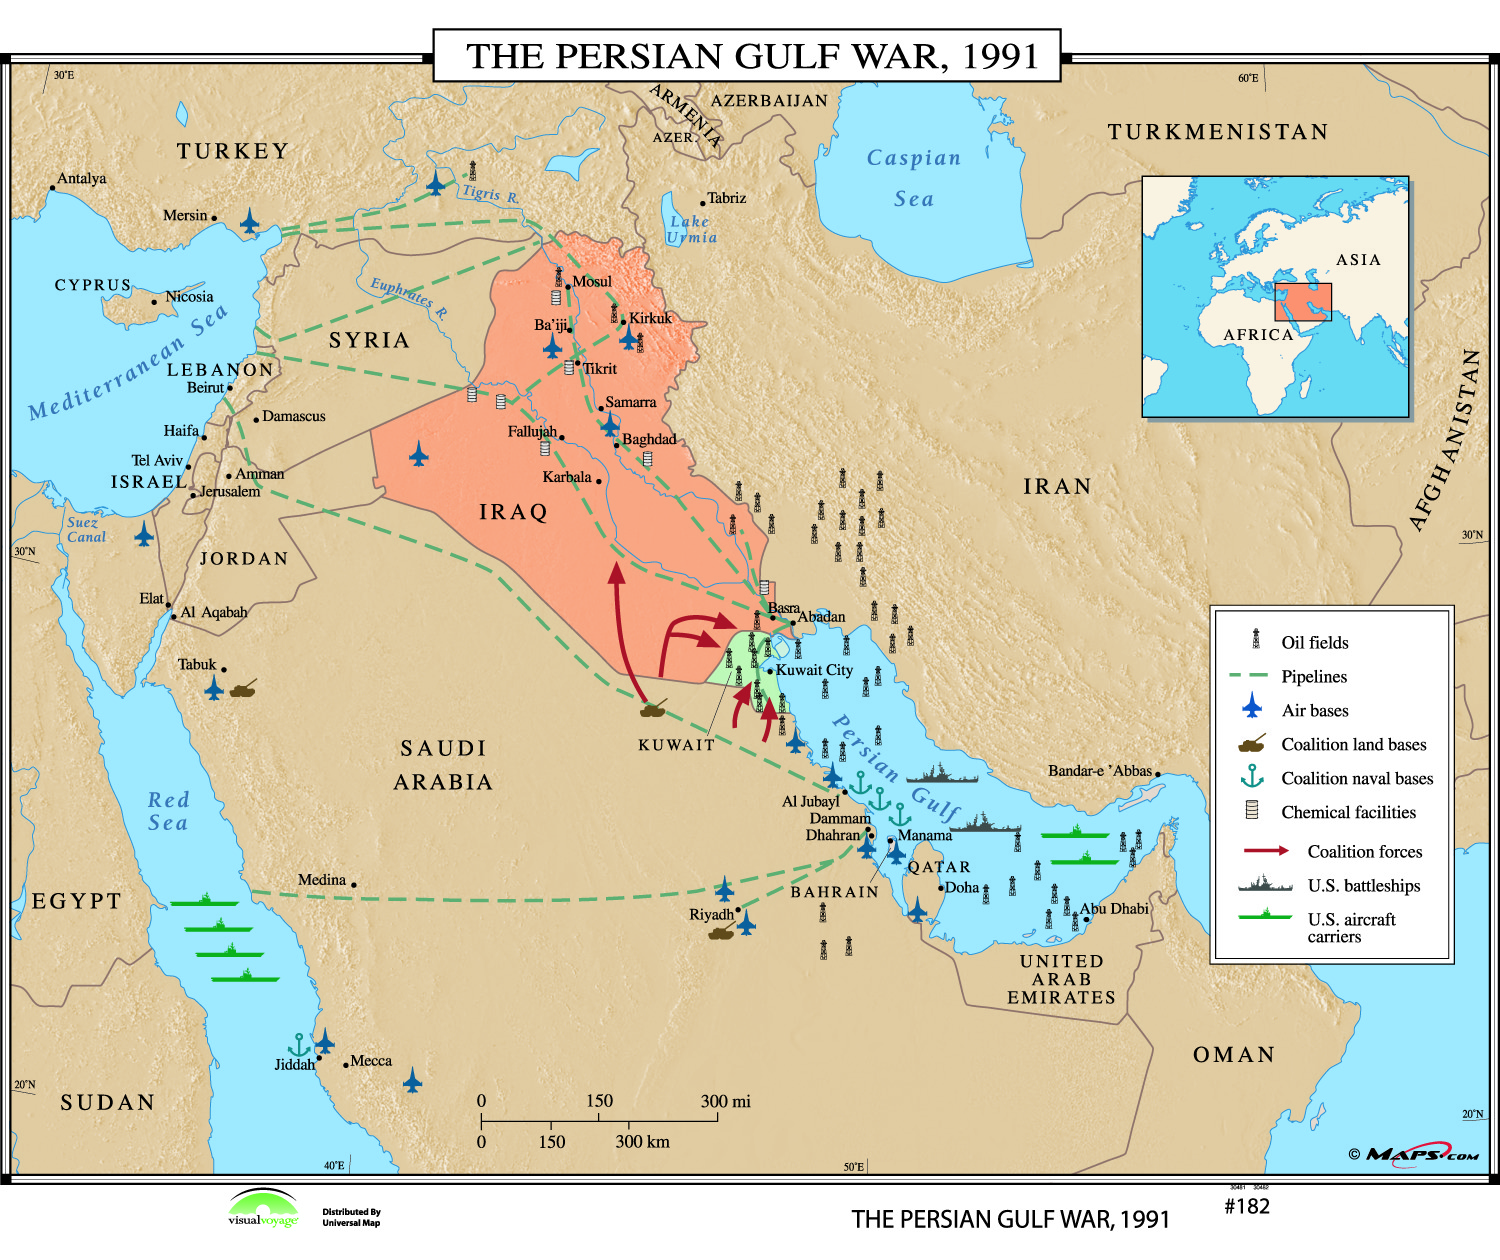 an introduction to the history of the american persian gulf war